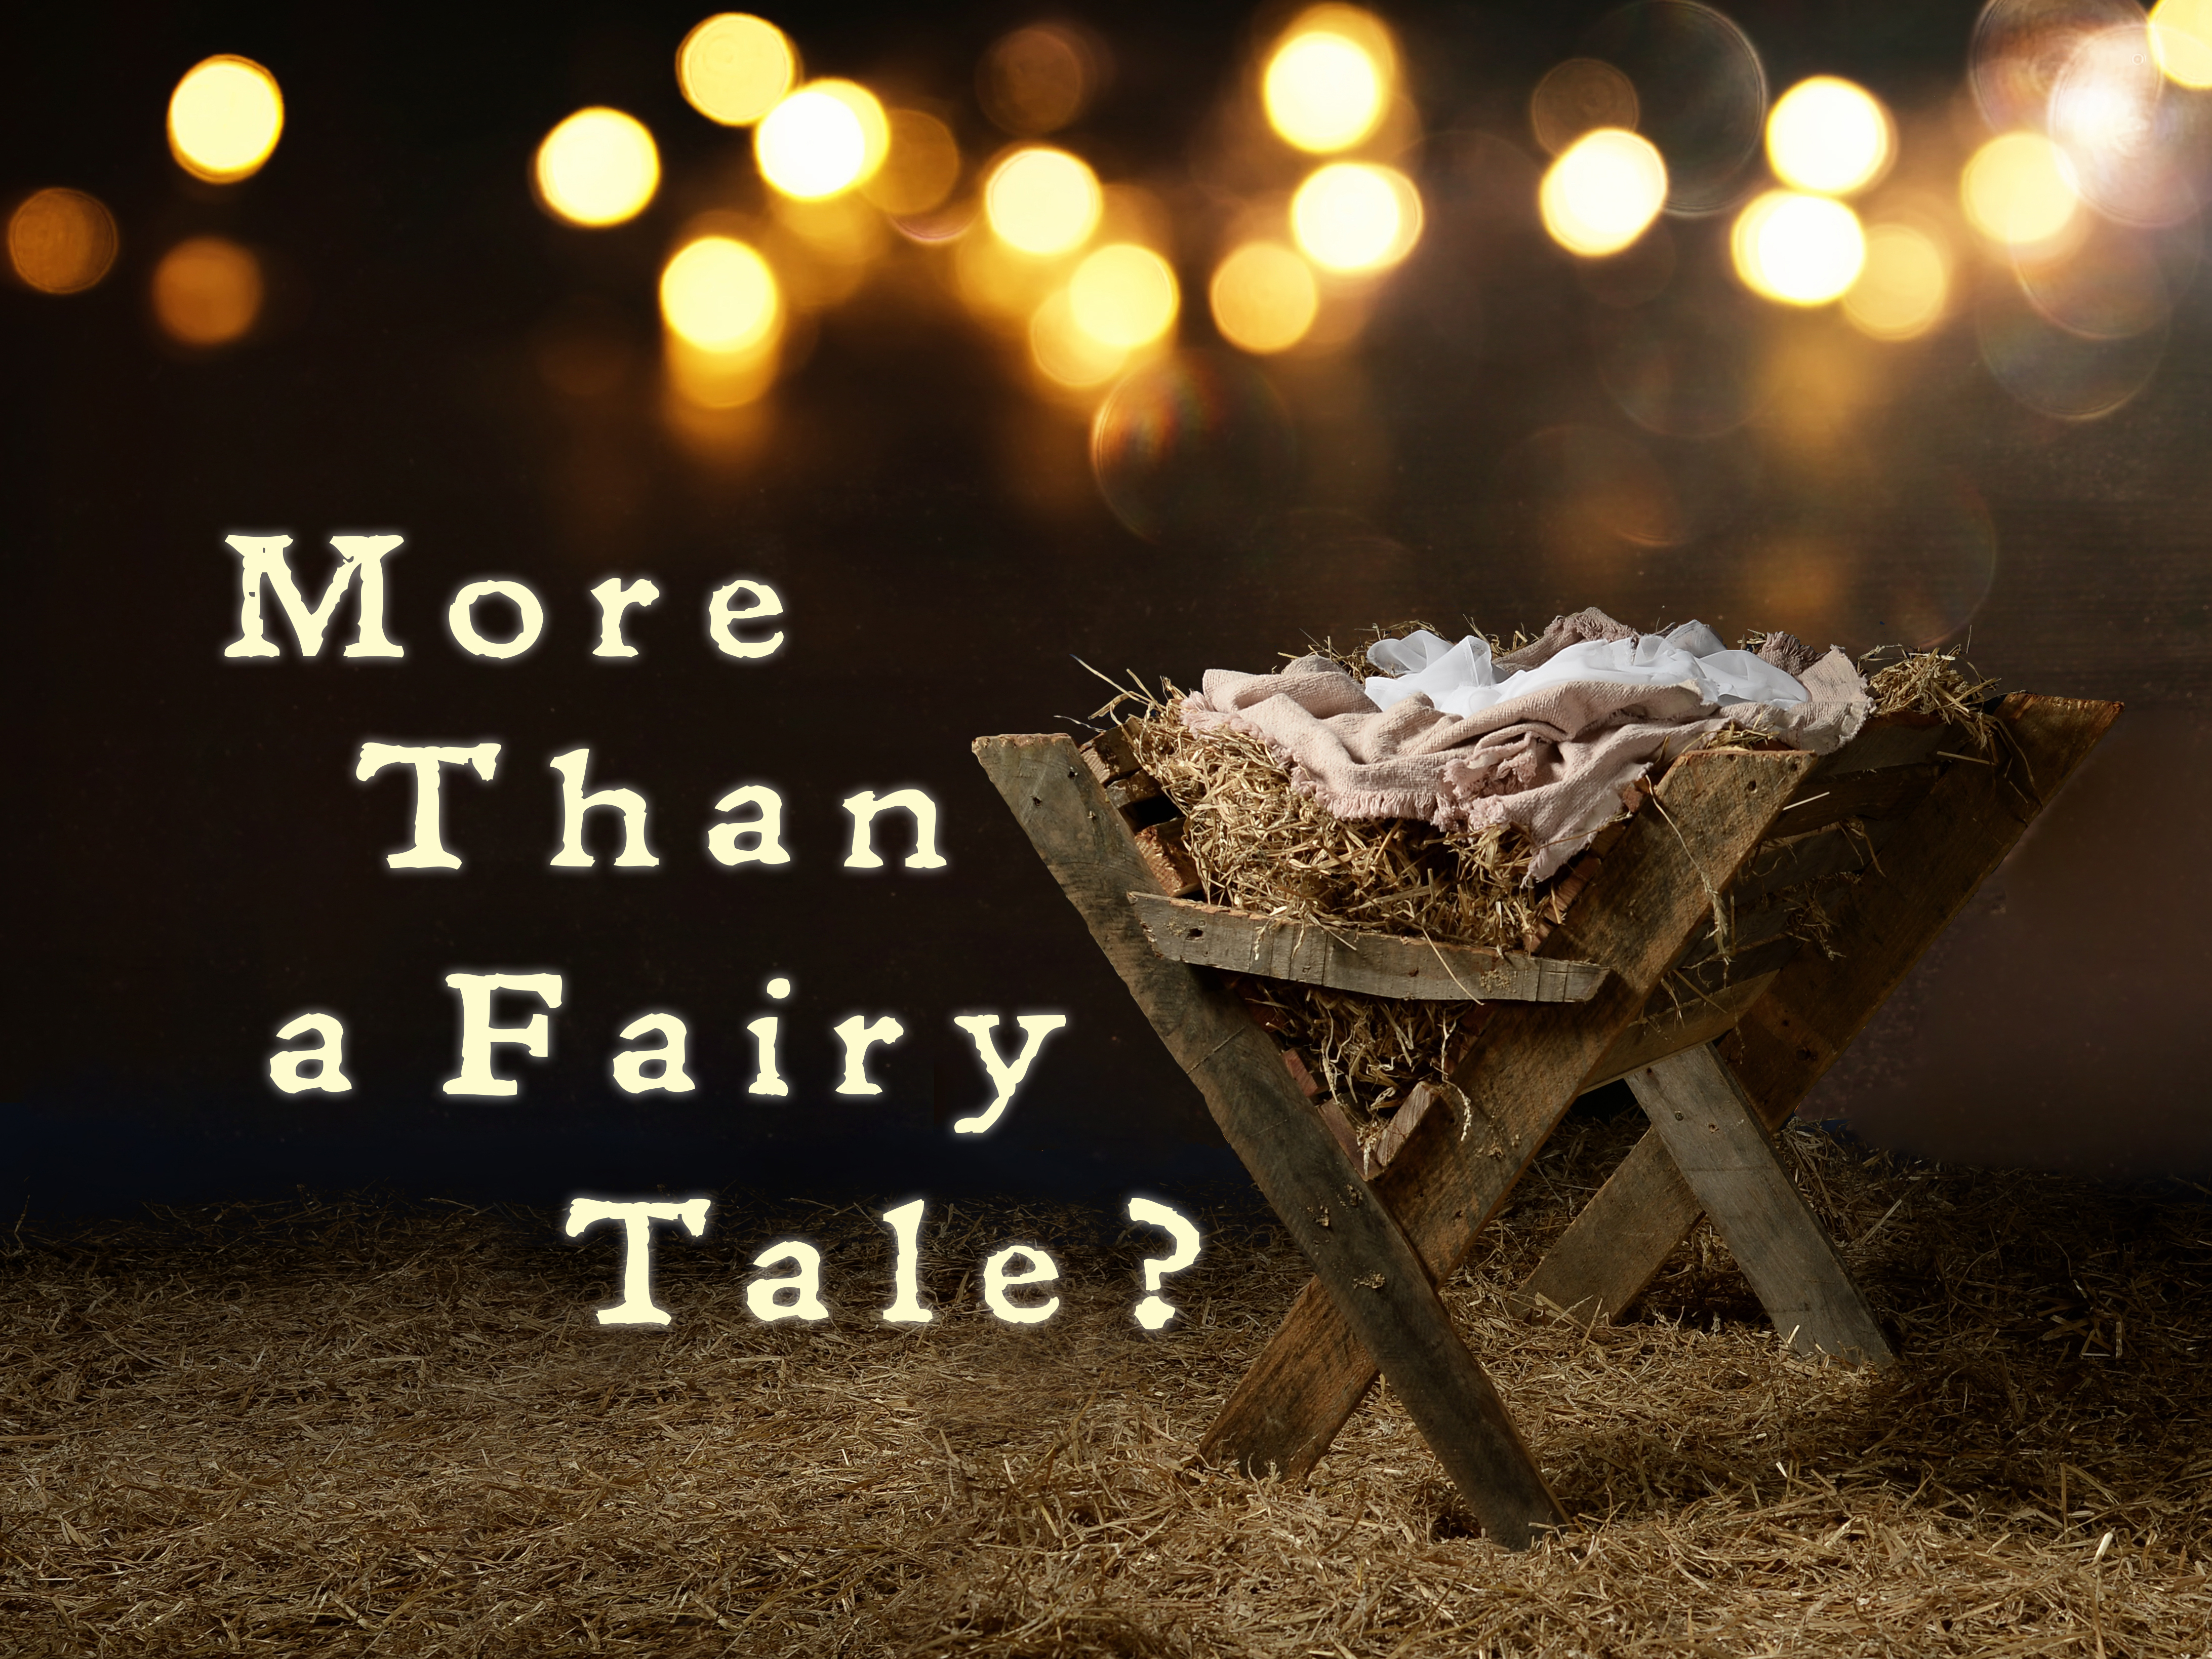 Advent 2018 - More Than a Fairy Tale?